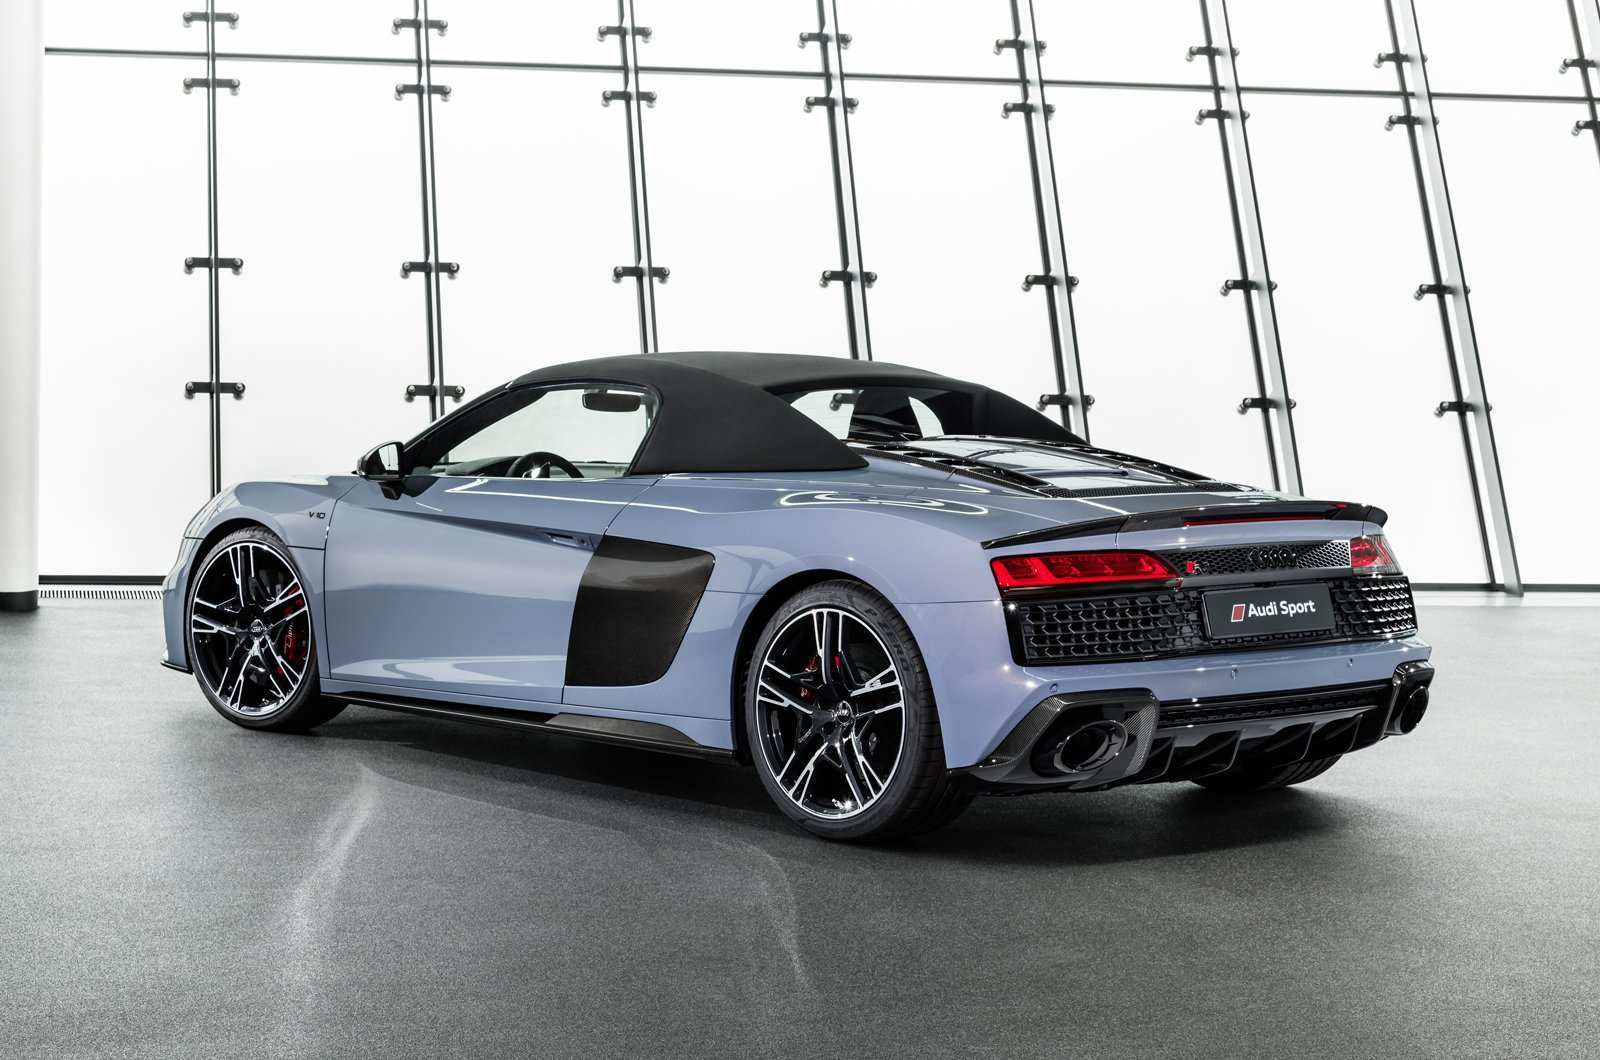 95 Gallery of The Audi V8 2019 Price And Release Date Model for The Audi V8 2019 Price And Release Date